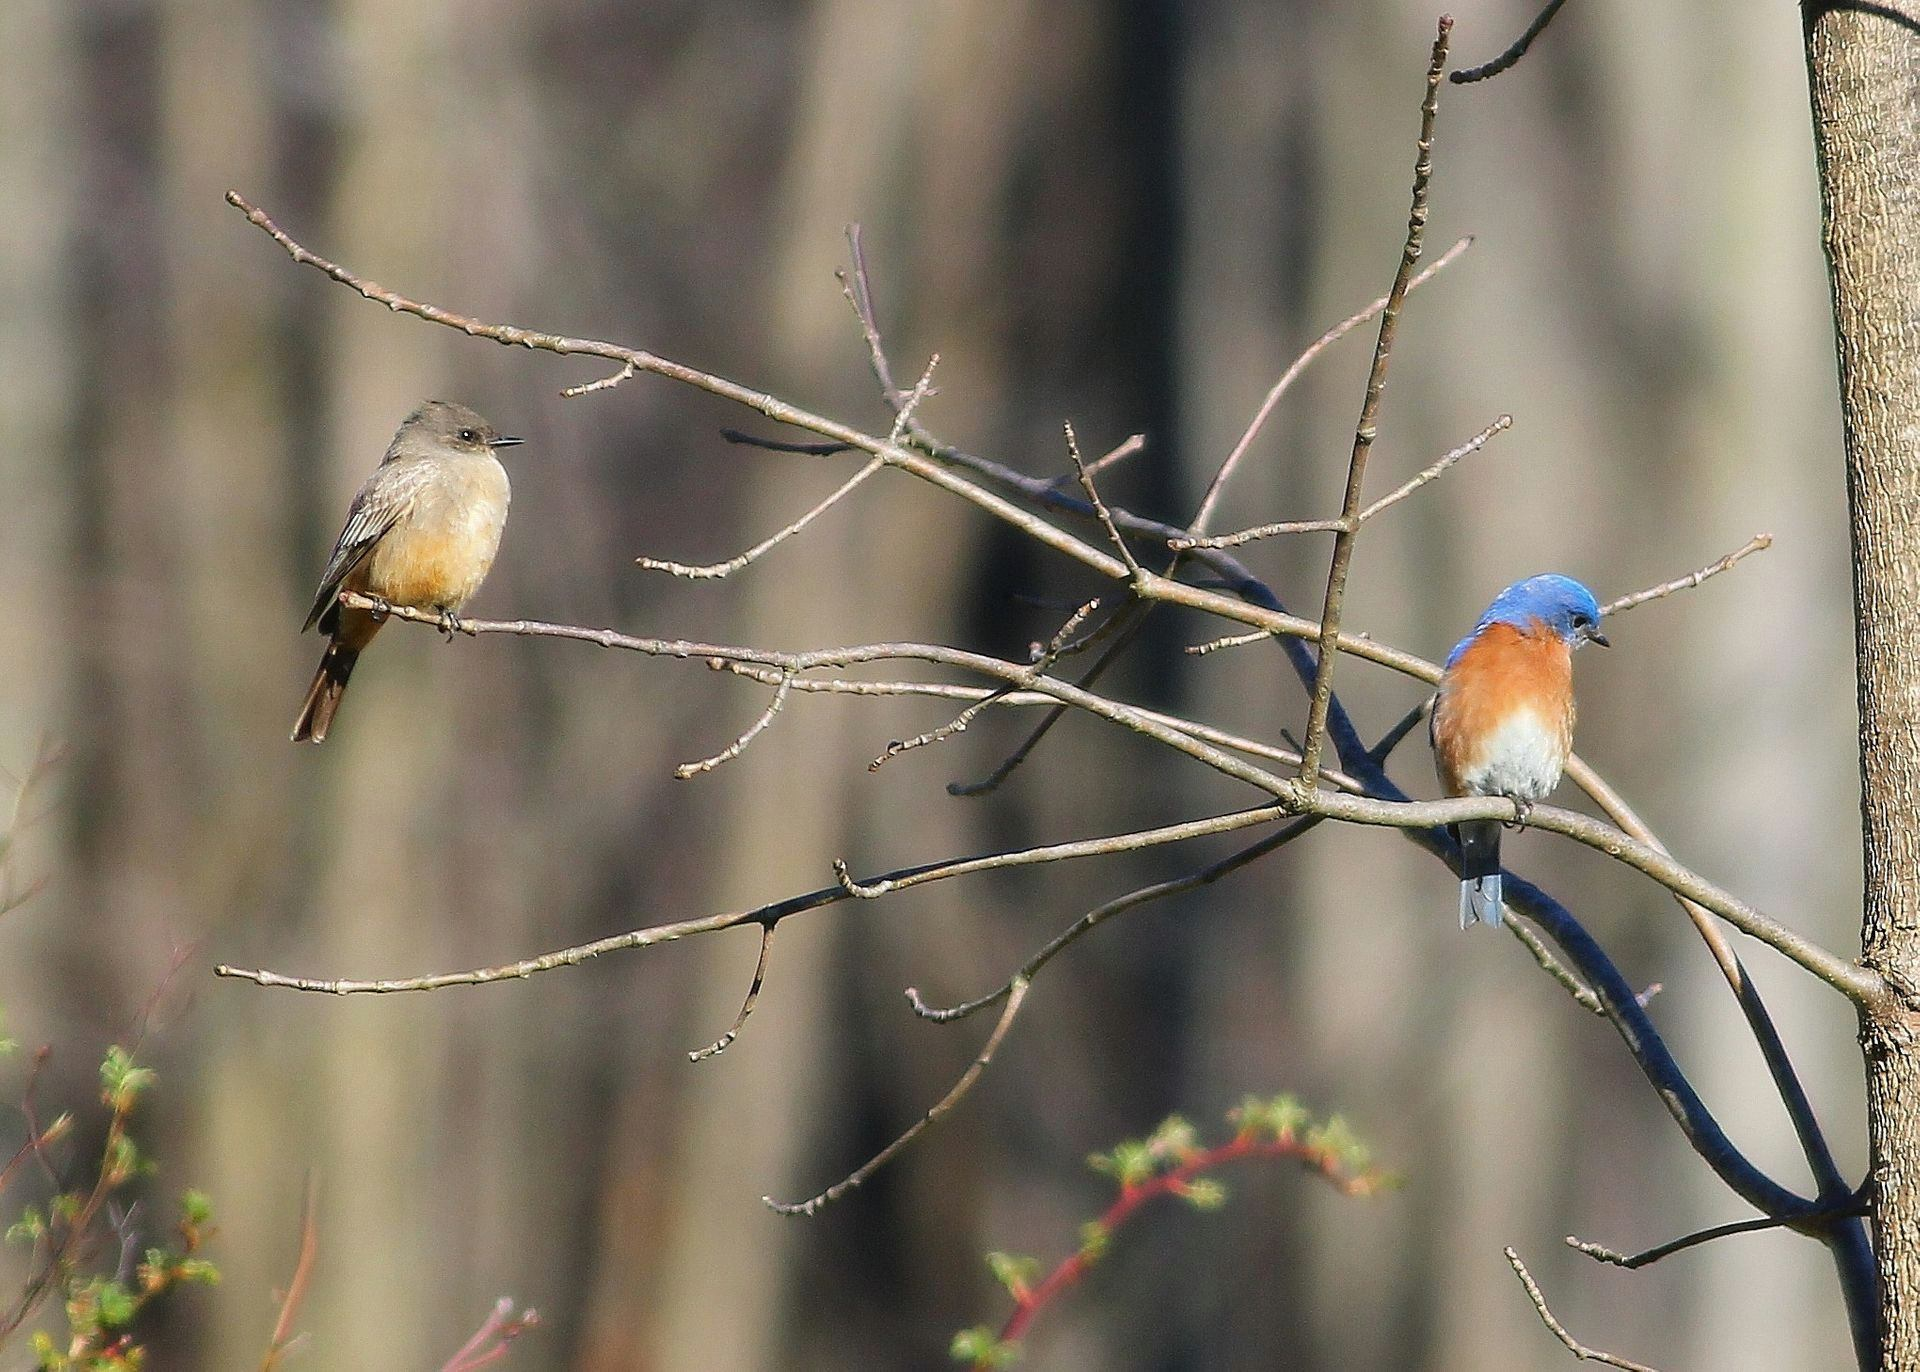 Visit bluebird boxes and learn about citizen science projects